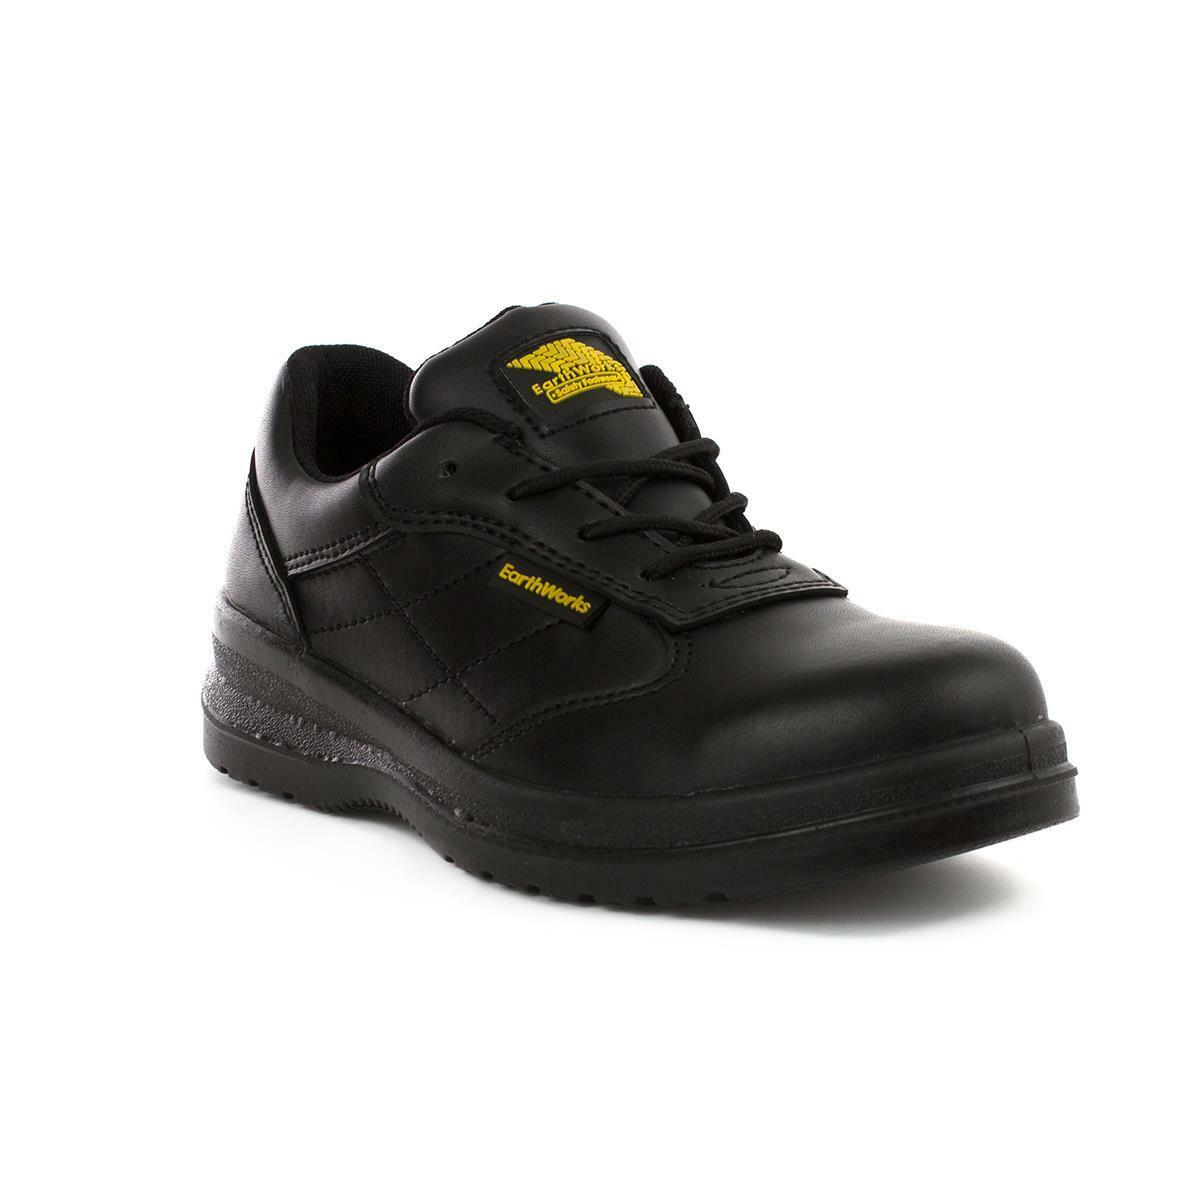 Earth Works Safety - Earth Works Unisex Safety Black Lace Up shoes